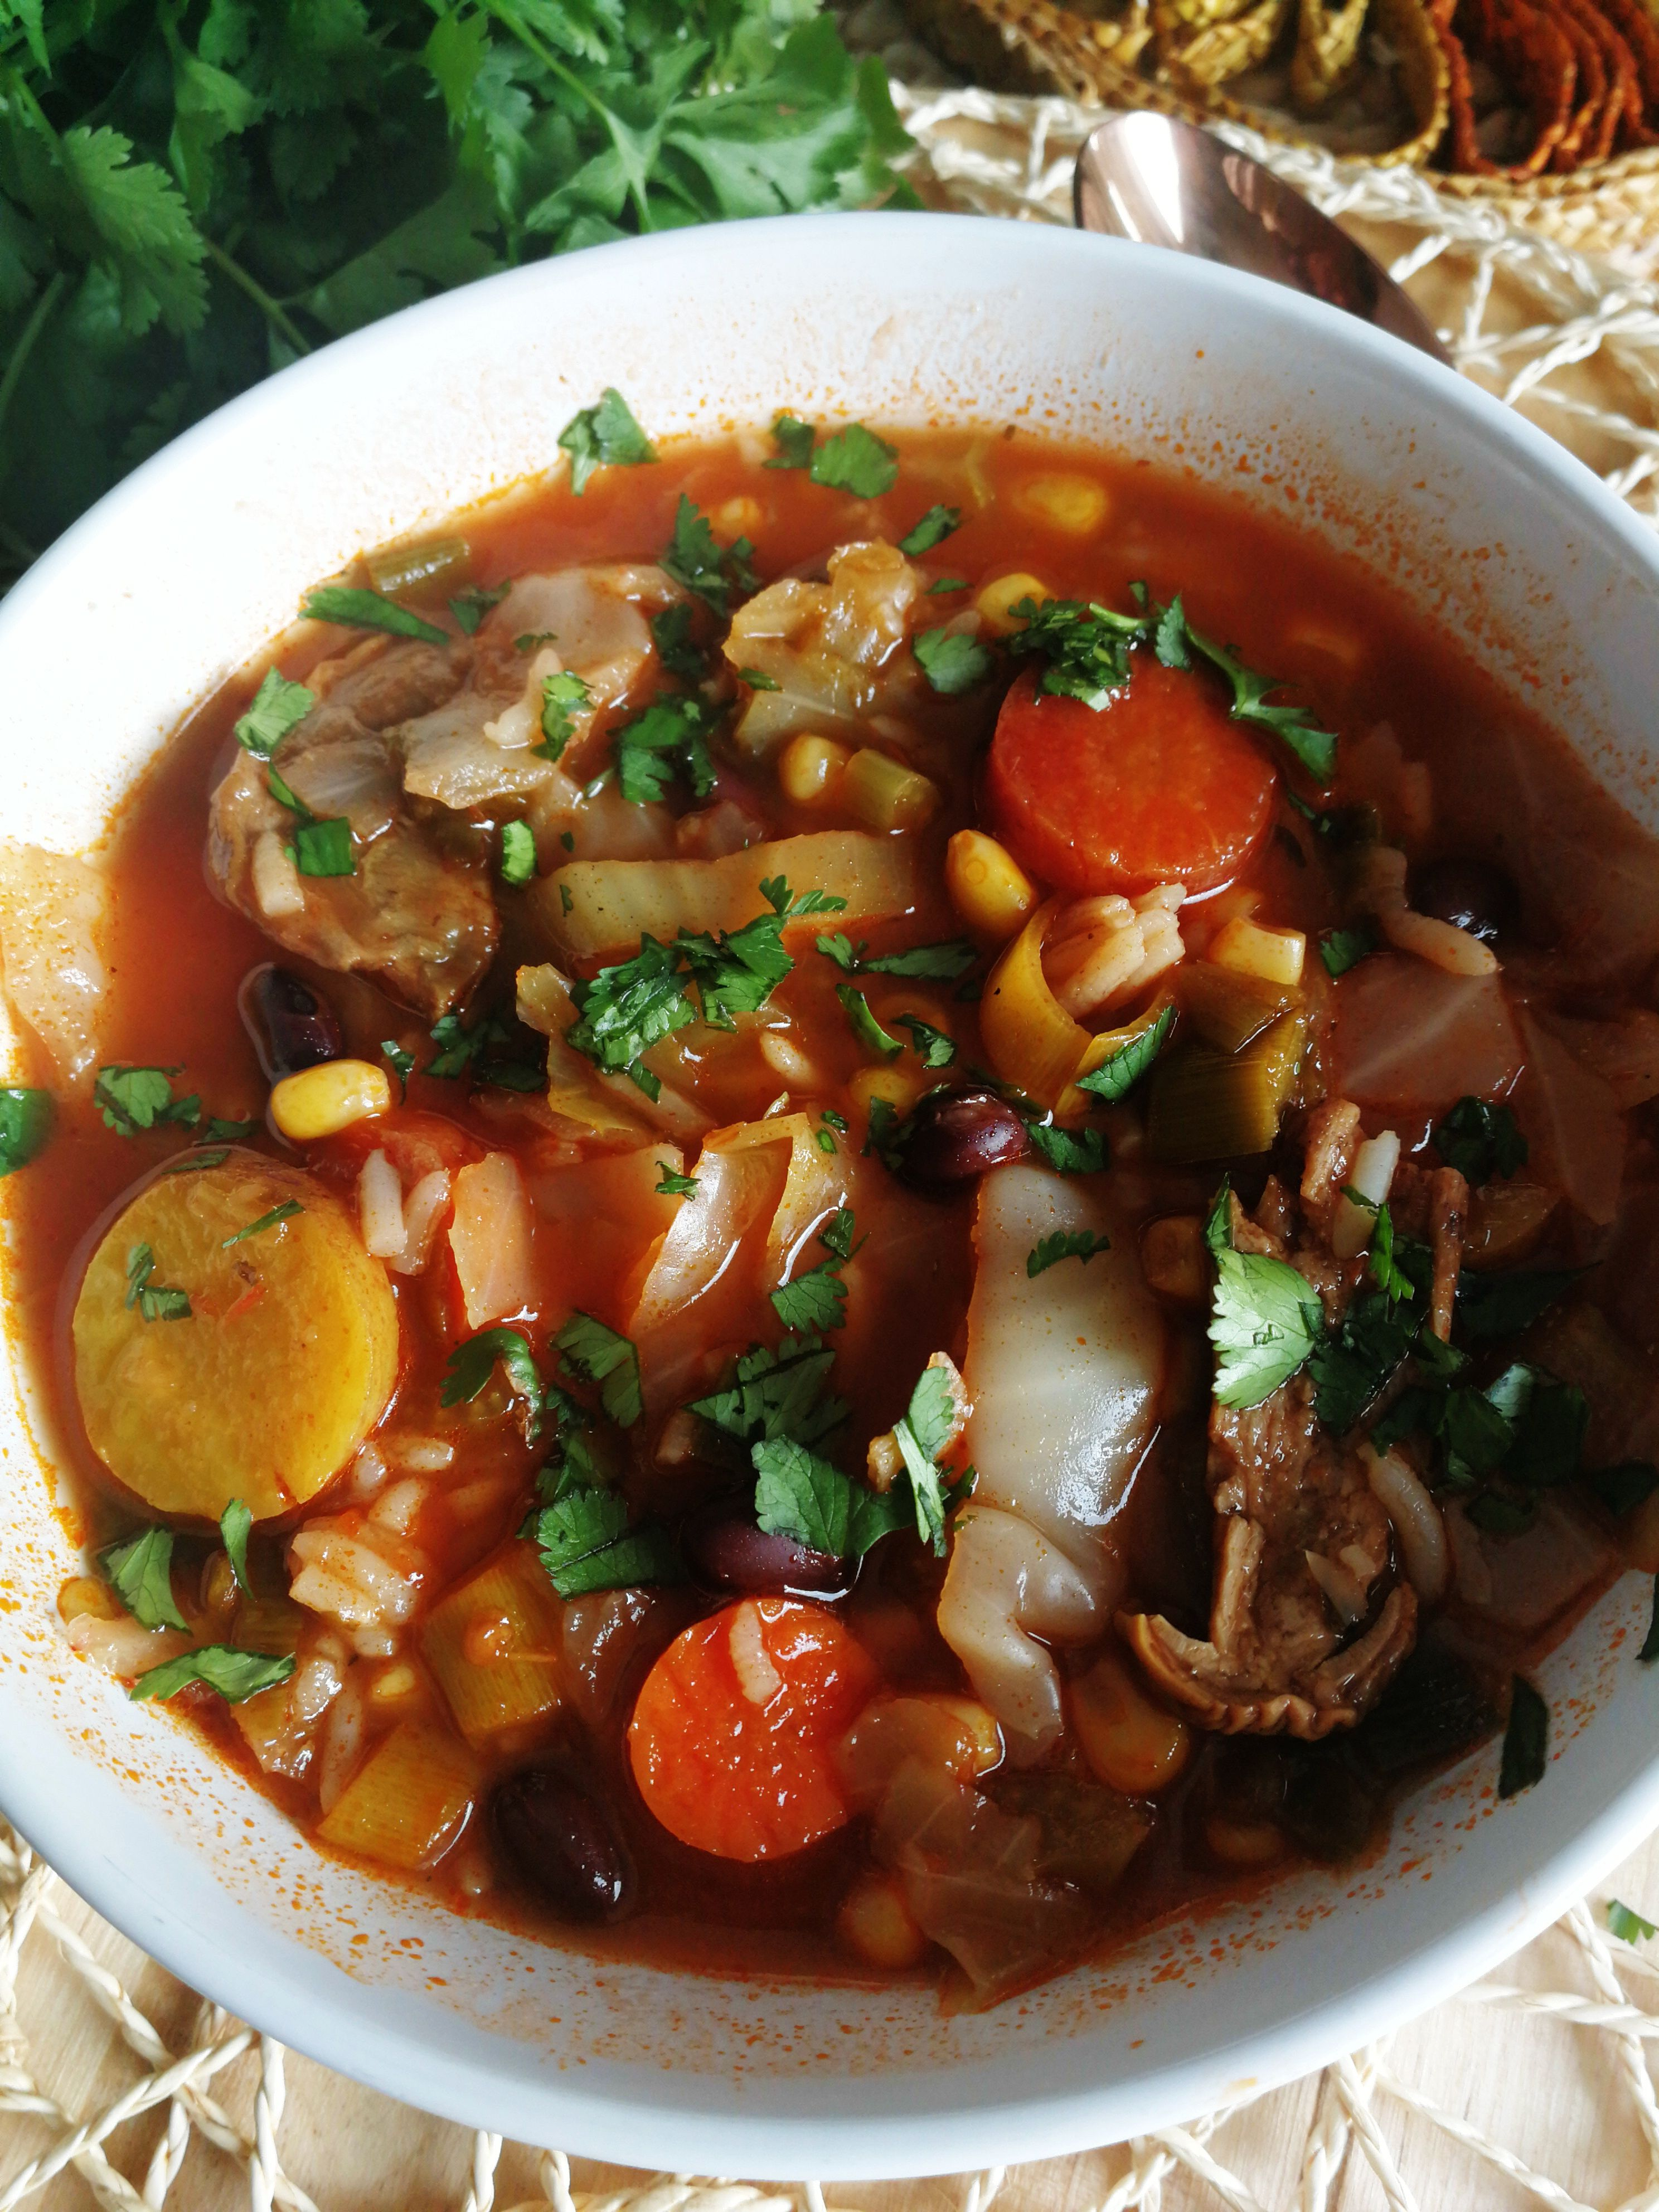 Cabbage soup recipe vegetarian cabbage soup